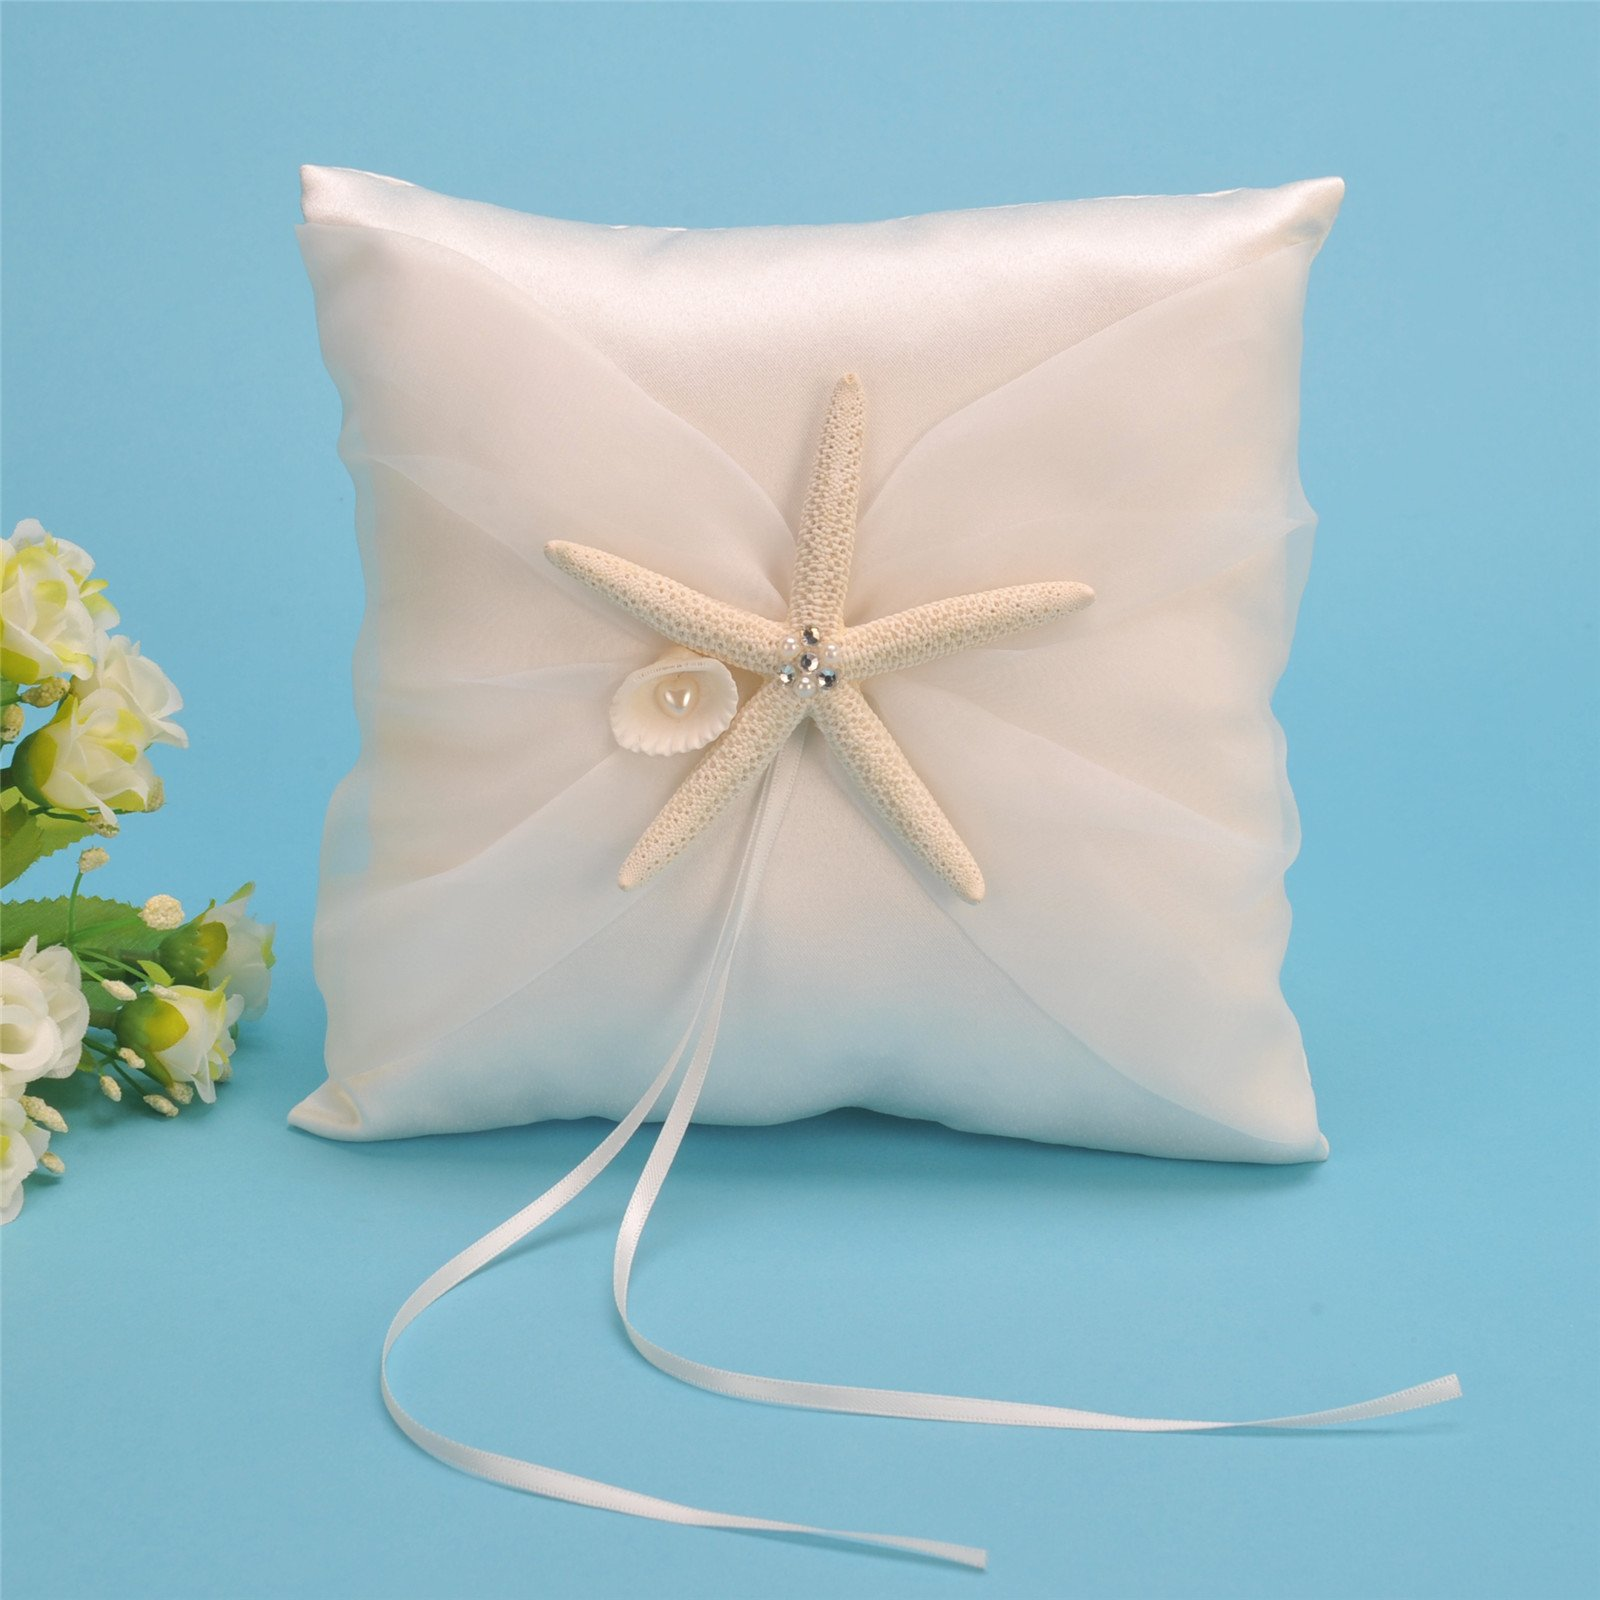 AWEI Satin and Organza Ivory Wedding Ring Bearer Pillow and Flower Girl Basket Set with Starfish